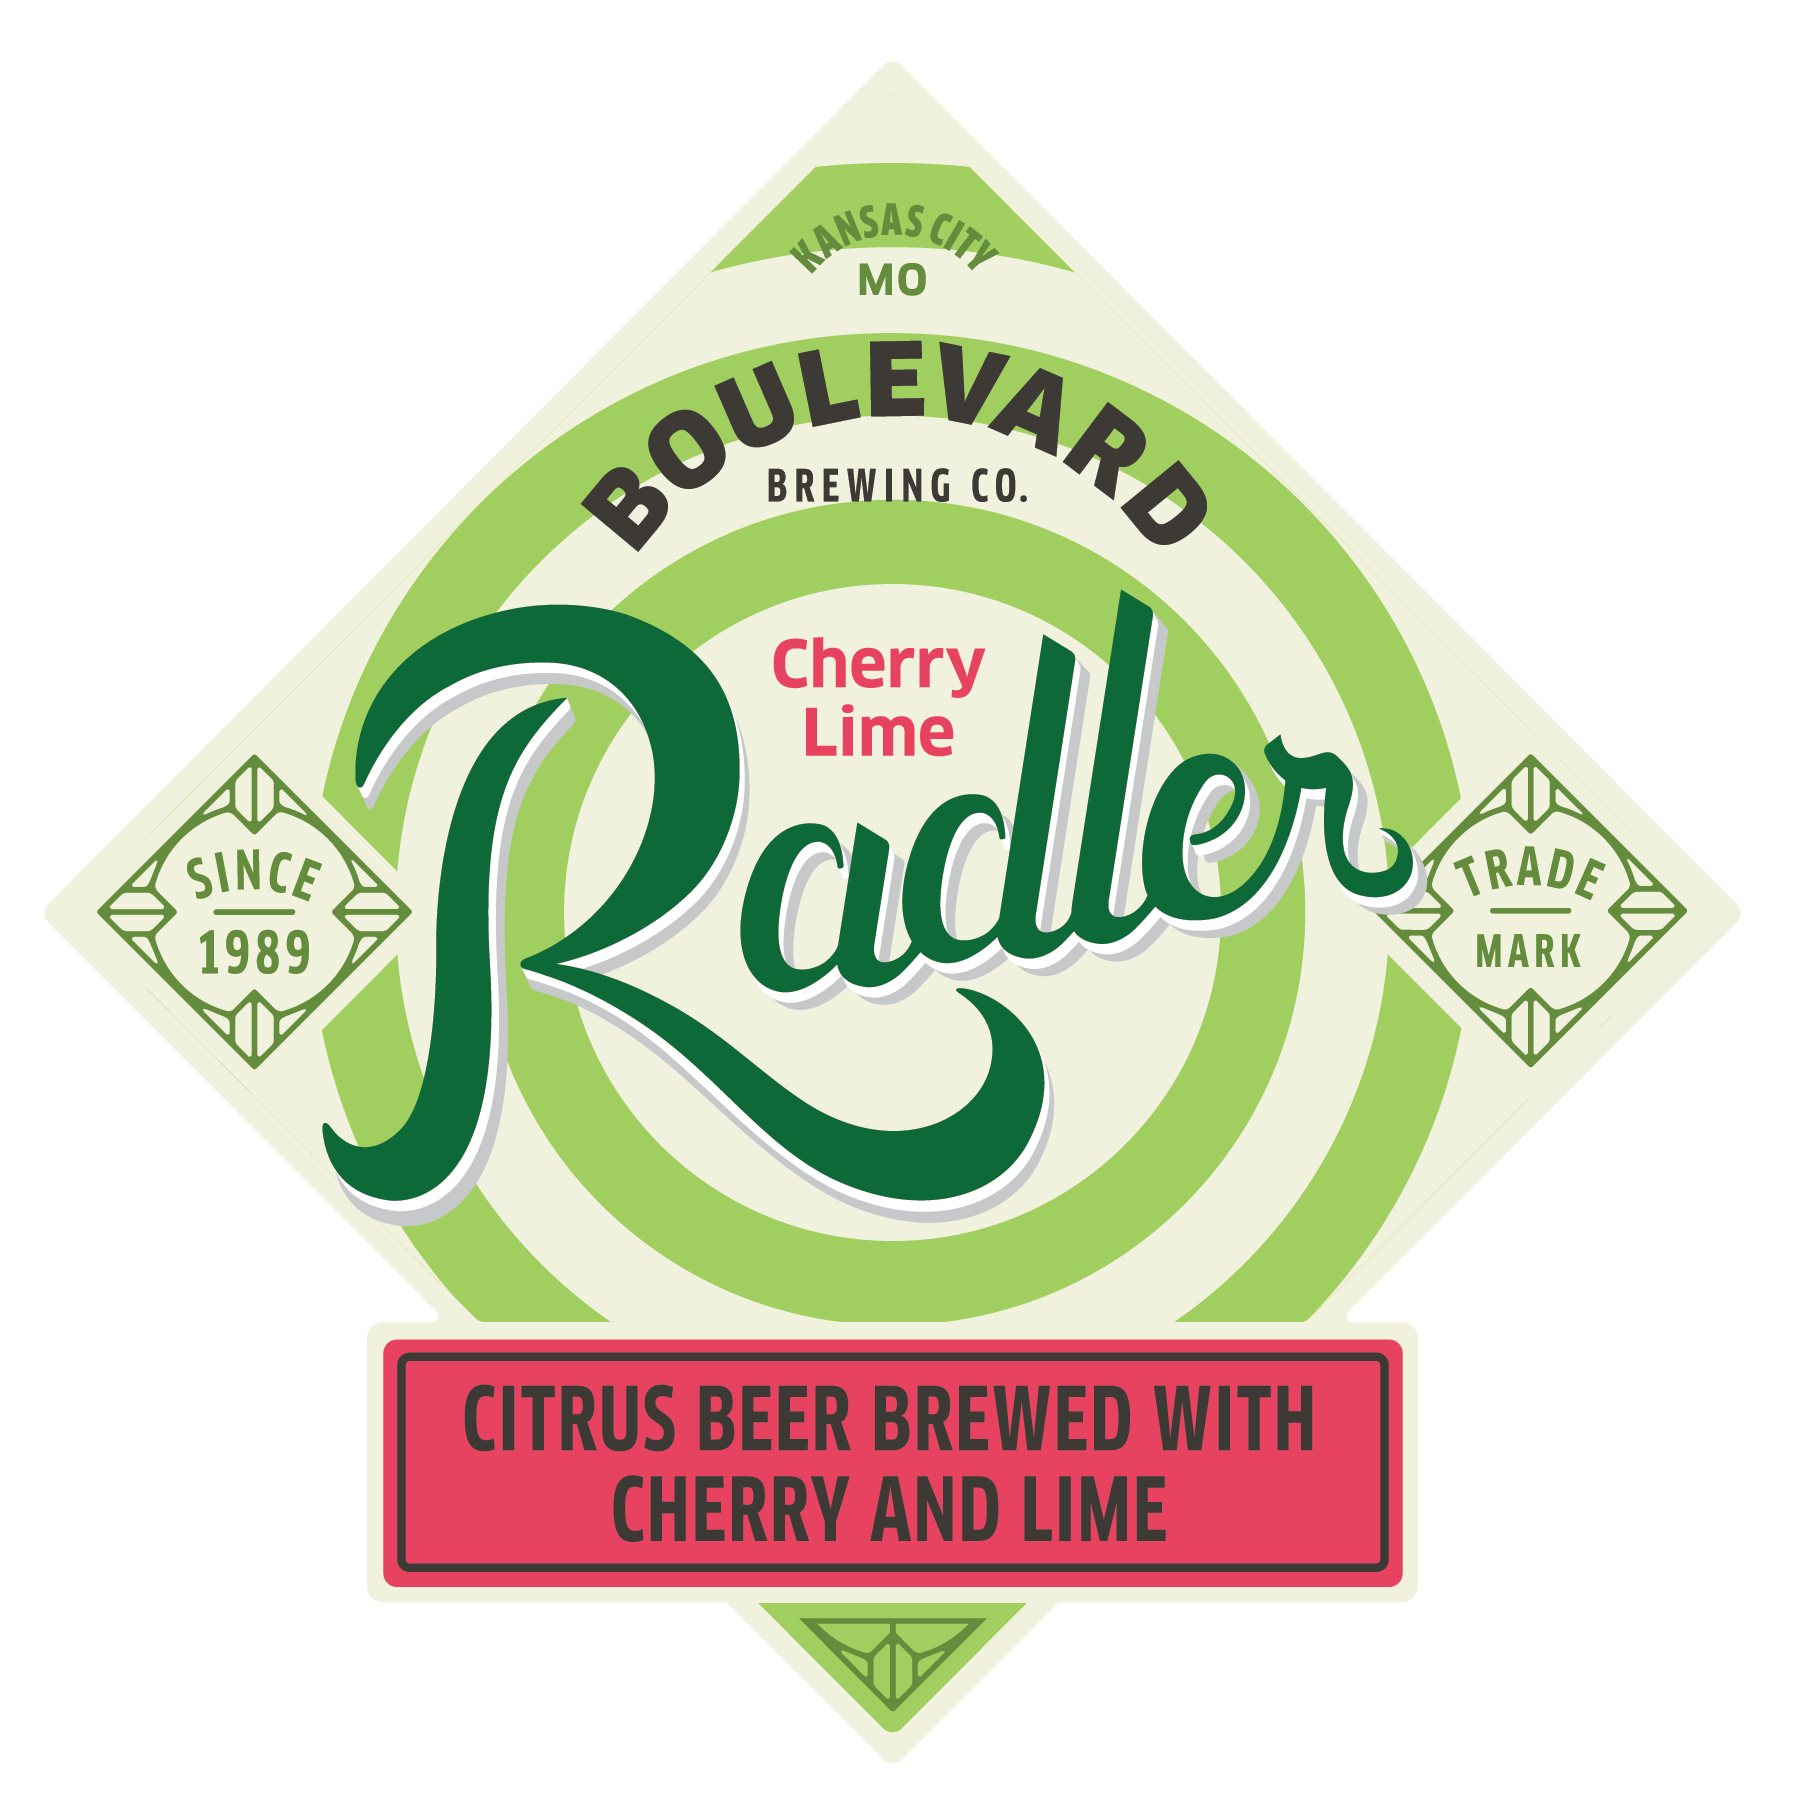 Cherry Lime Radler